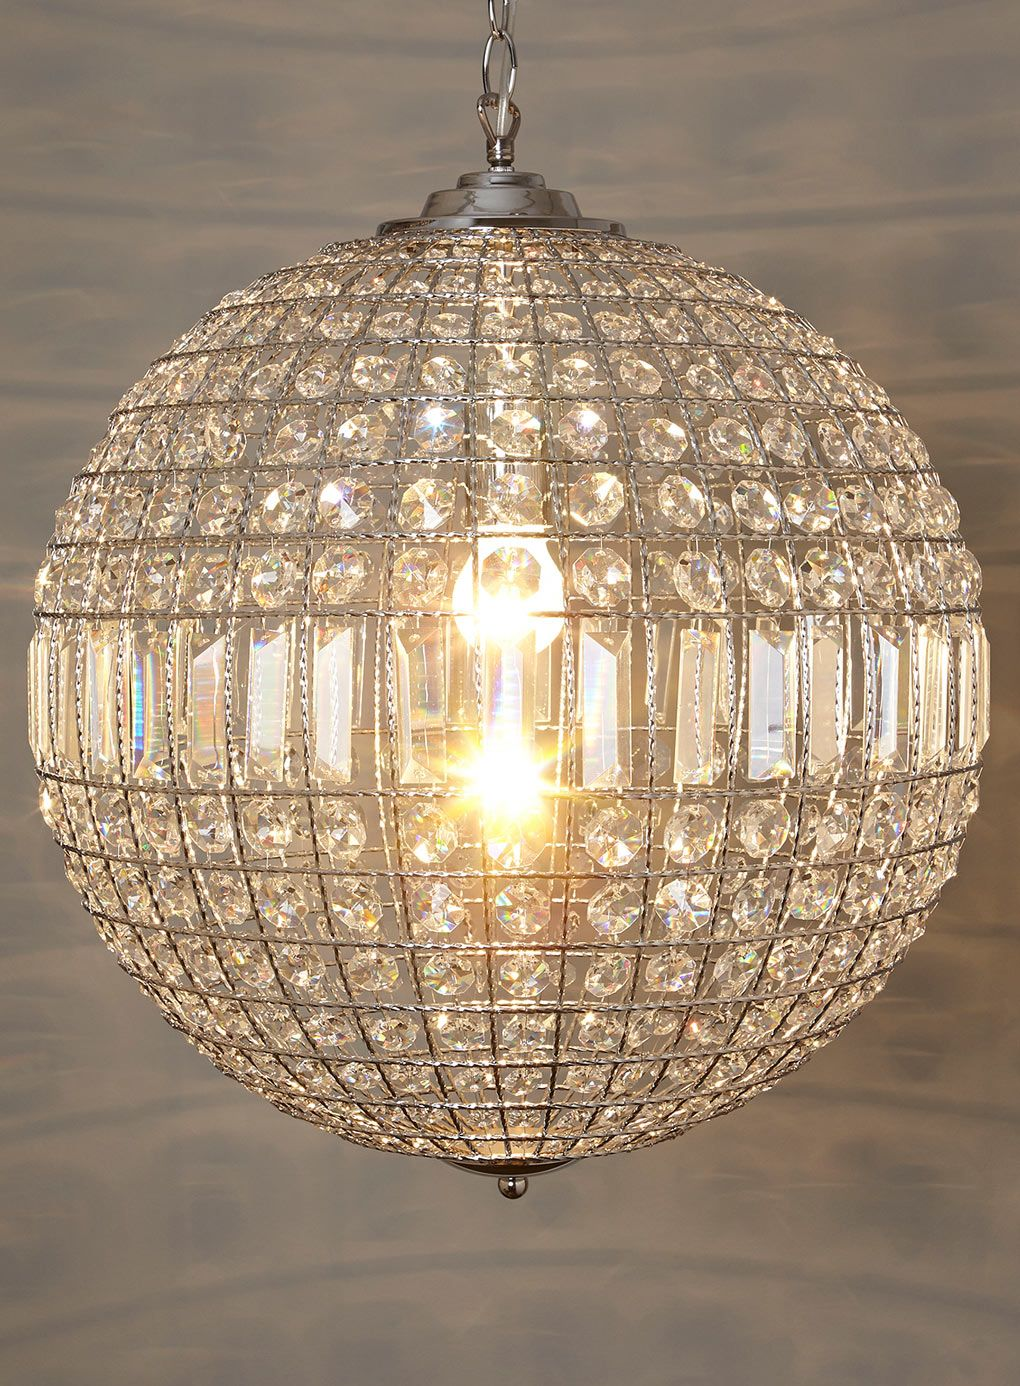 Ursula large crystal ball pendant - lighting - home ...